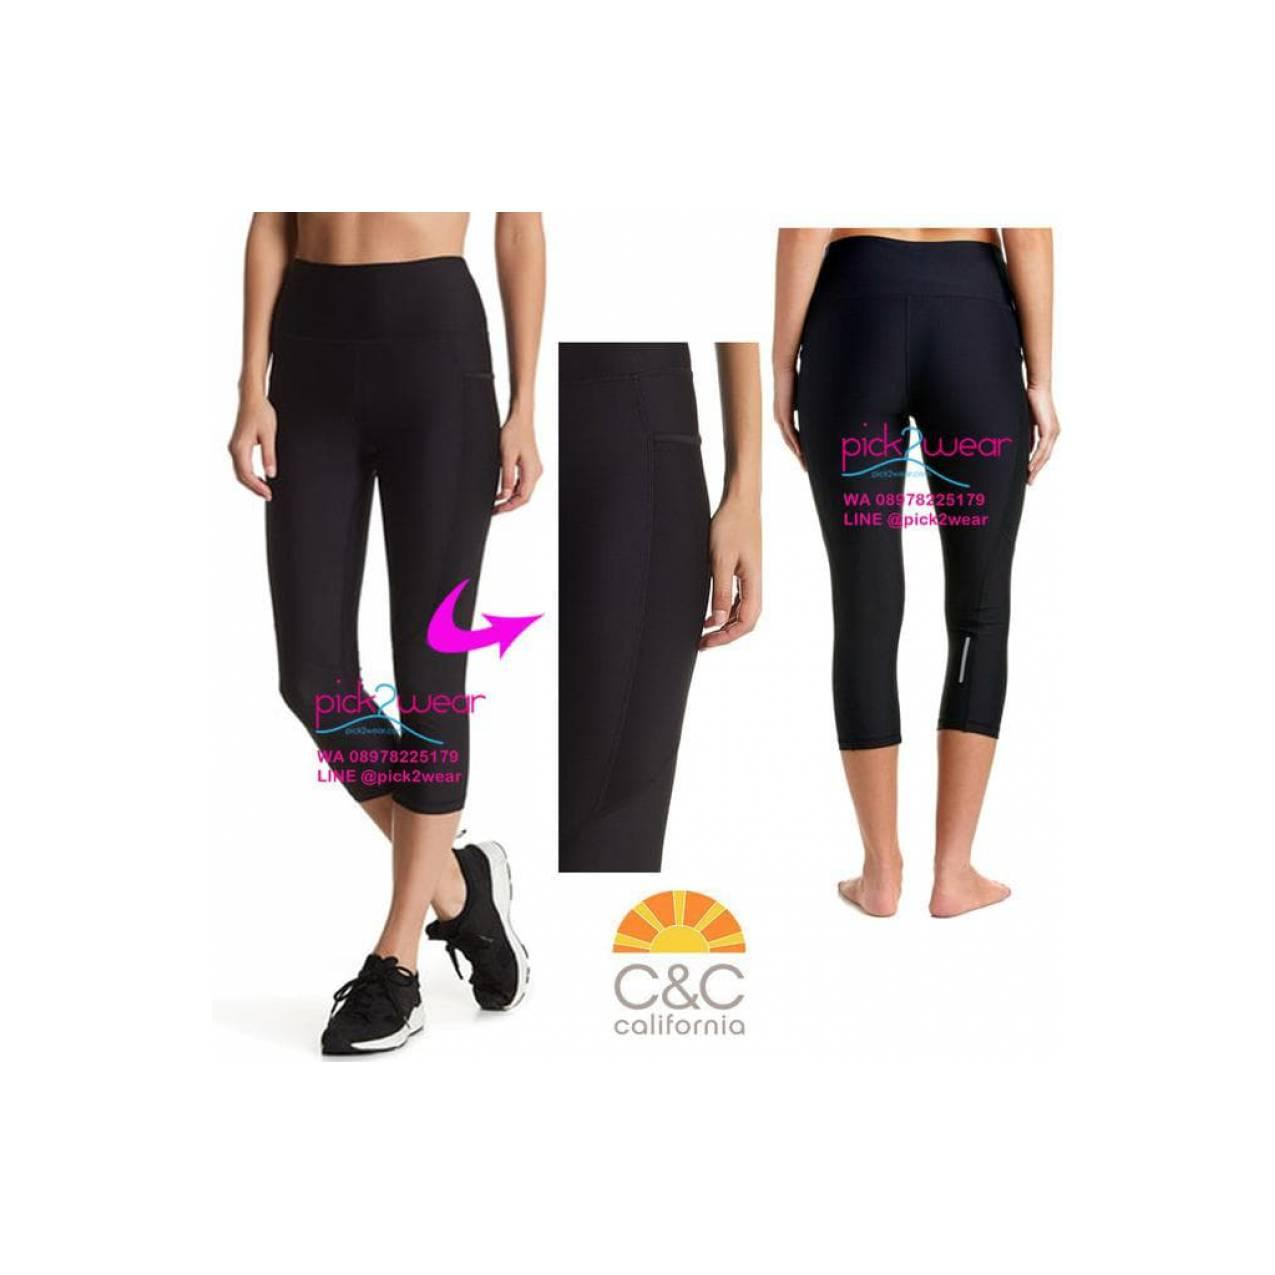 Jual Celana Senam Capri Yoga Gym Zumba Muaythai Black Pocket Limited